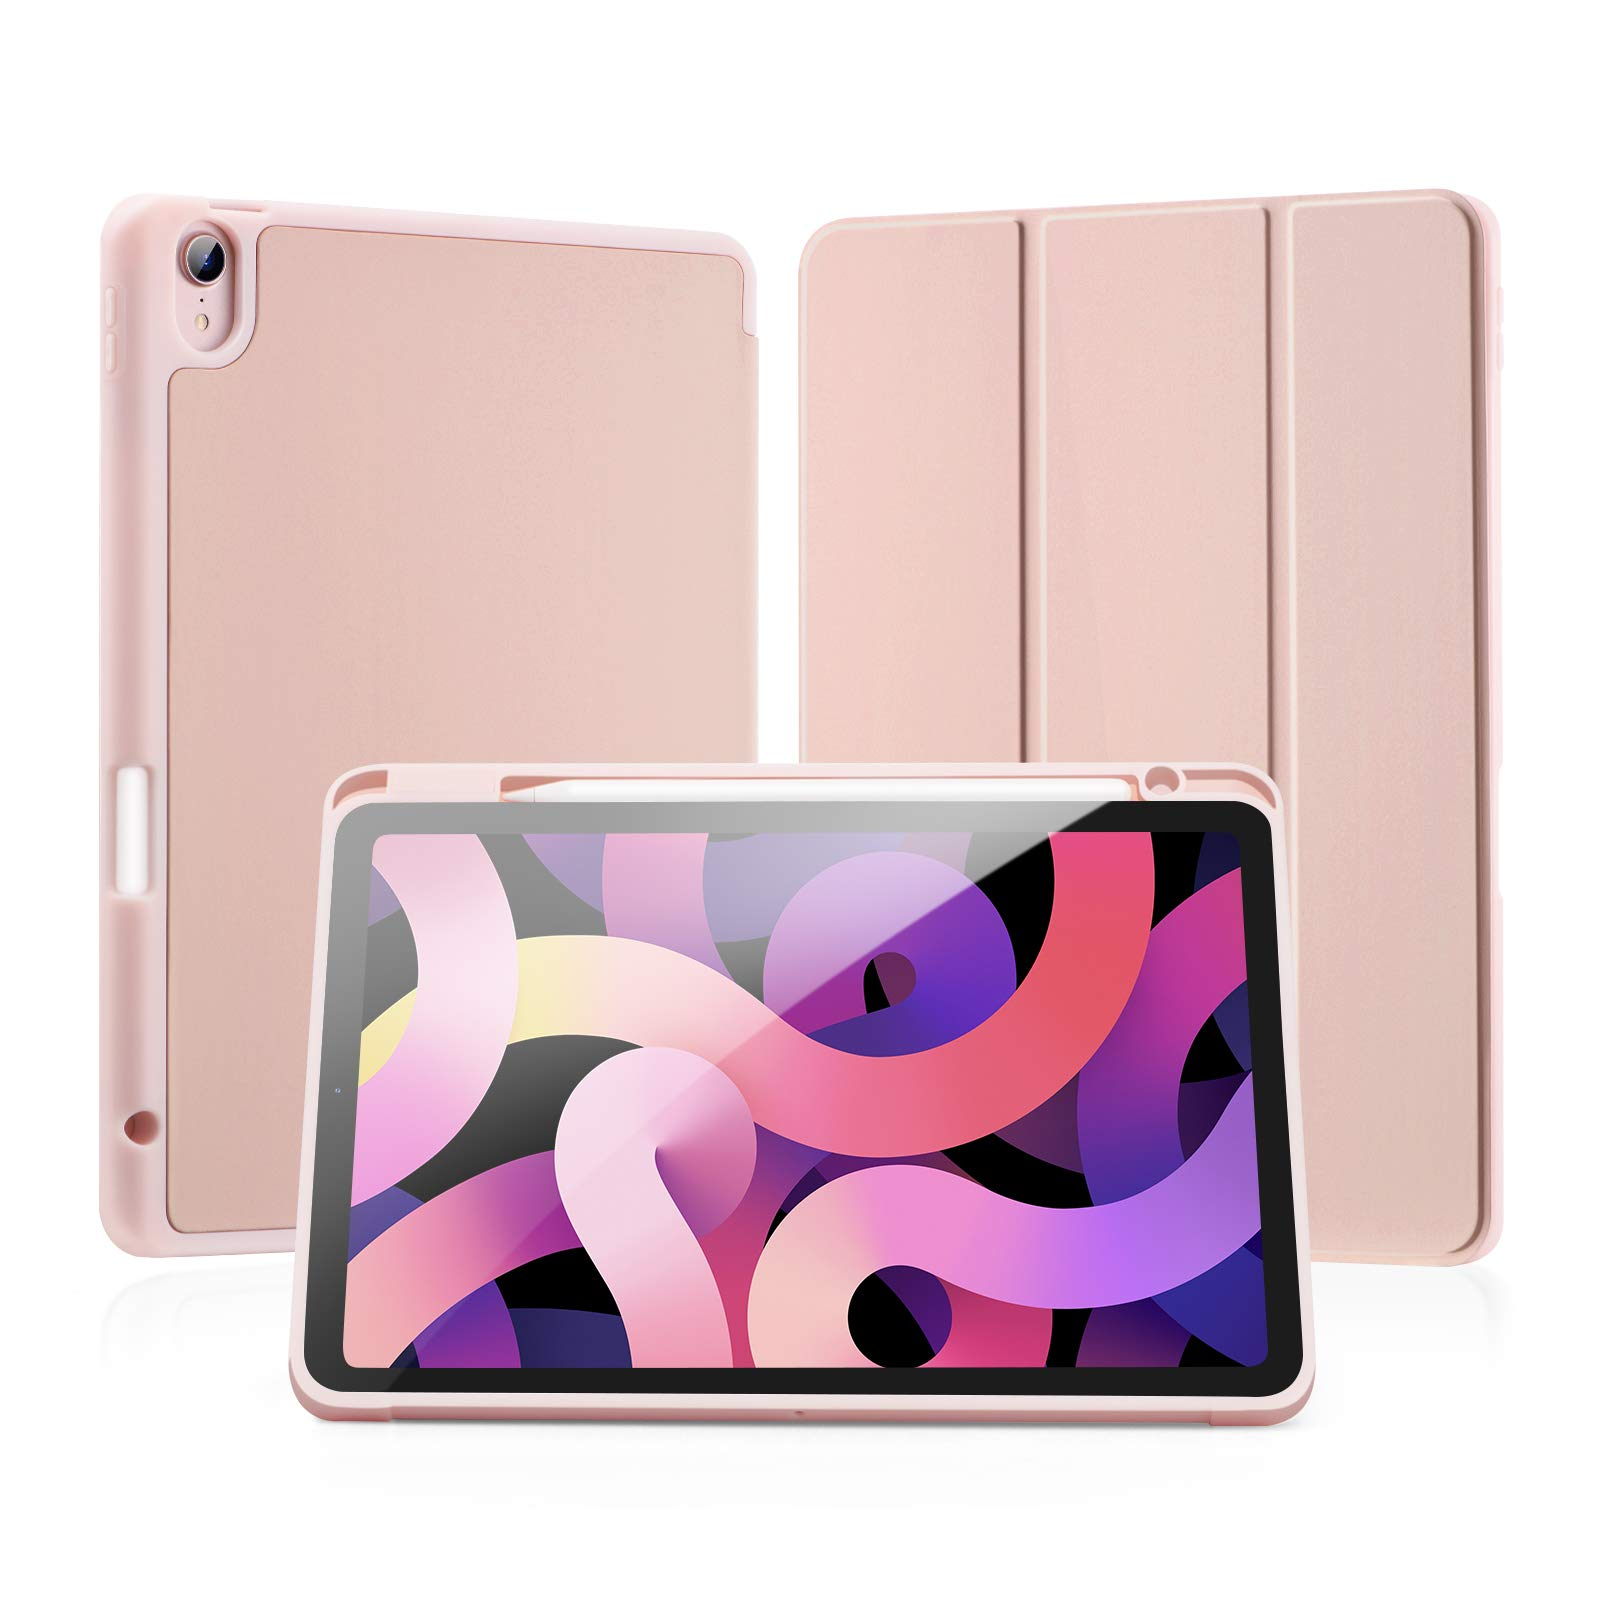 LovRug iPad Air 4 Case 10.9Inch 2020/iPad Air 4th Generation Case with Pencil Holder[Full Body Protection+Apple 2nd Pencil Charging+ Auto Sleep/Wake] Soft TPU Smart Back Cover Case (Rose Gold)